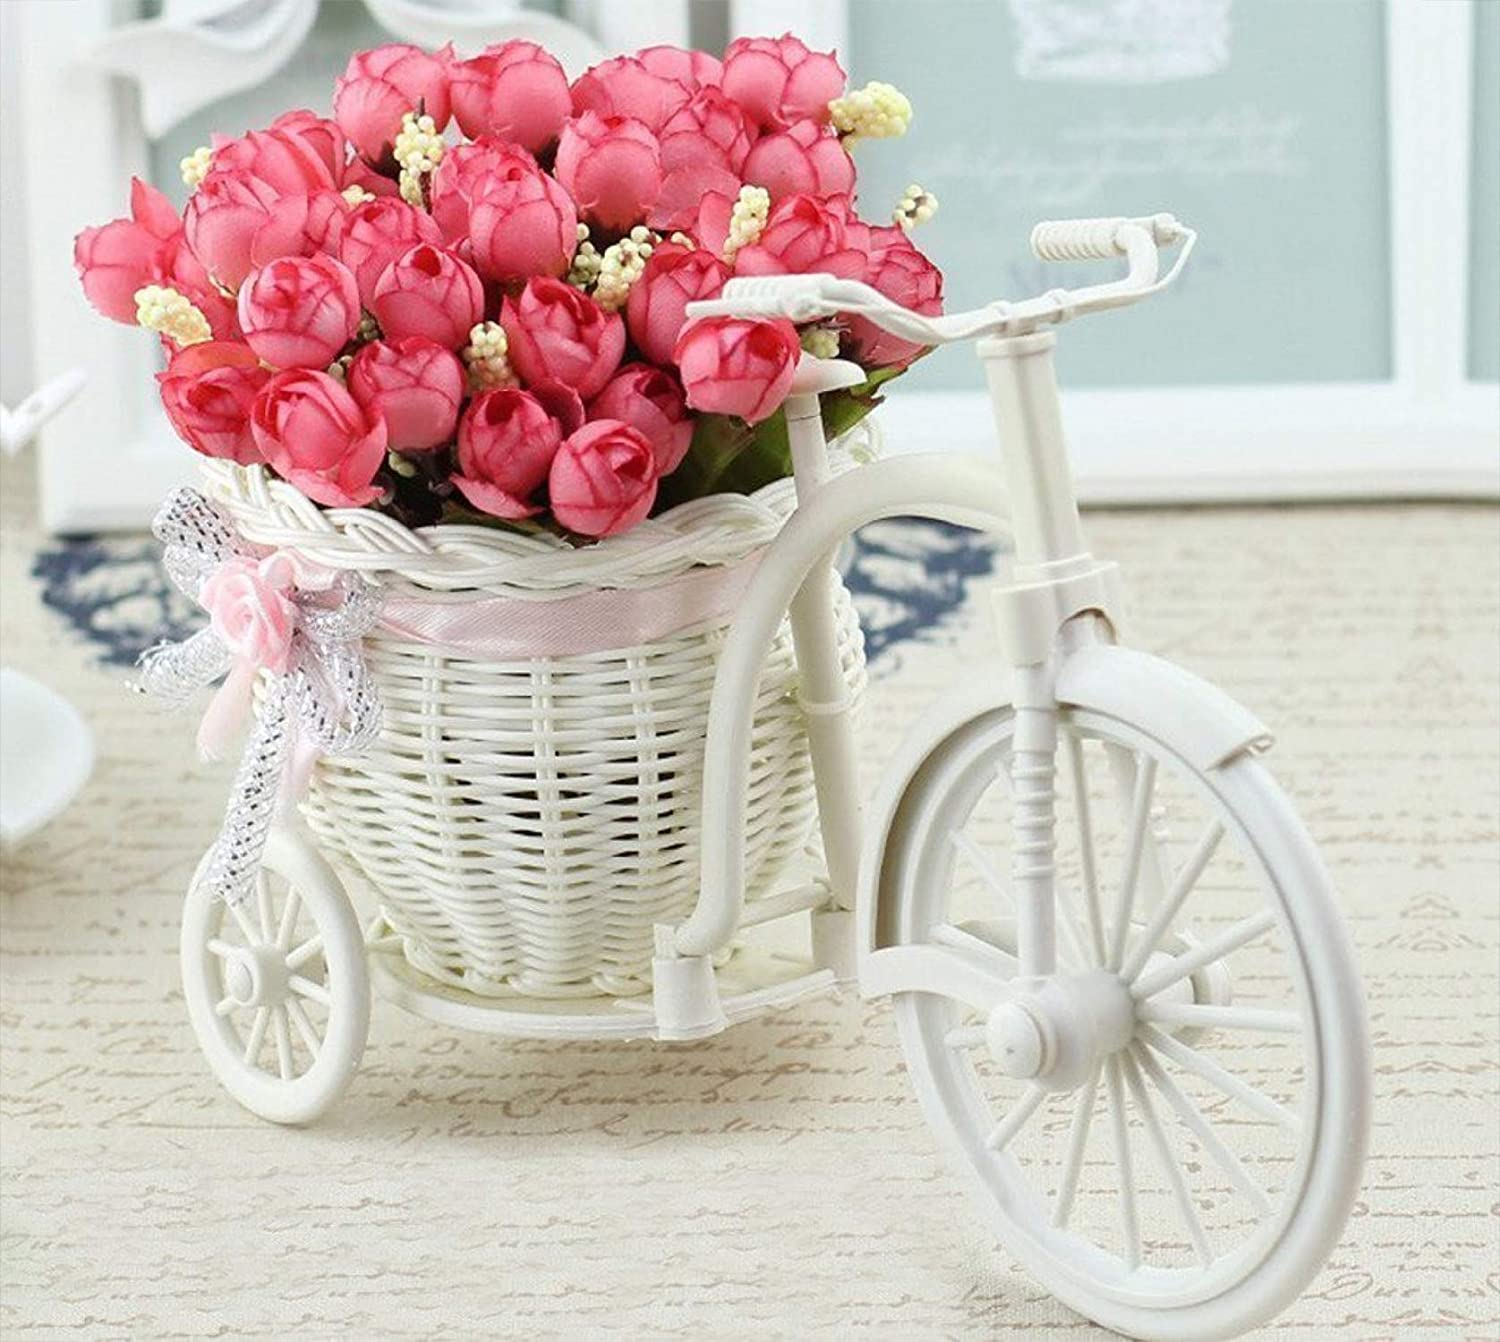 TIED RIBBONS Artificial Peonies Flowers with Cycle Shape Vase Basket Pot